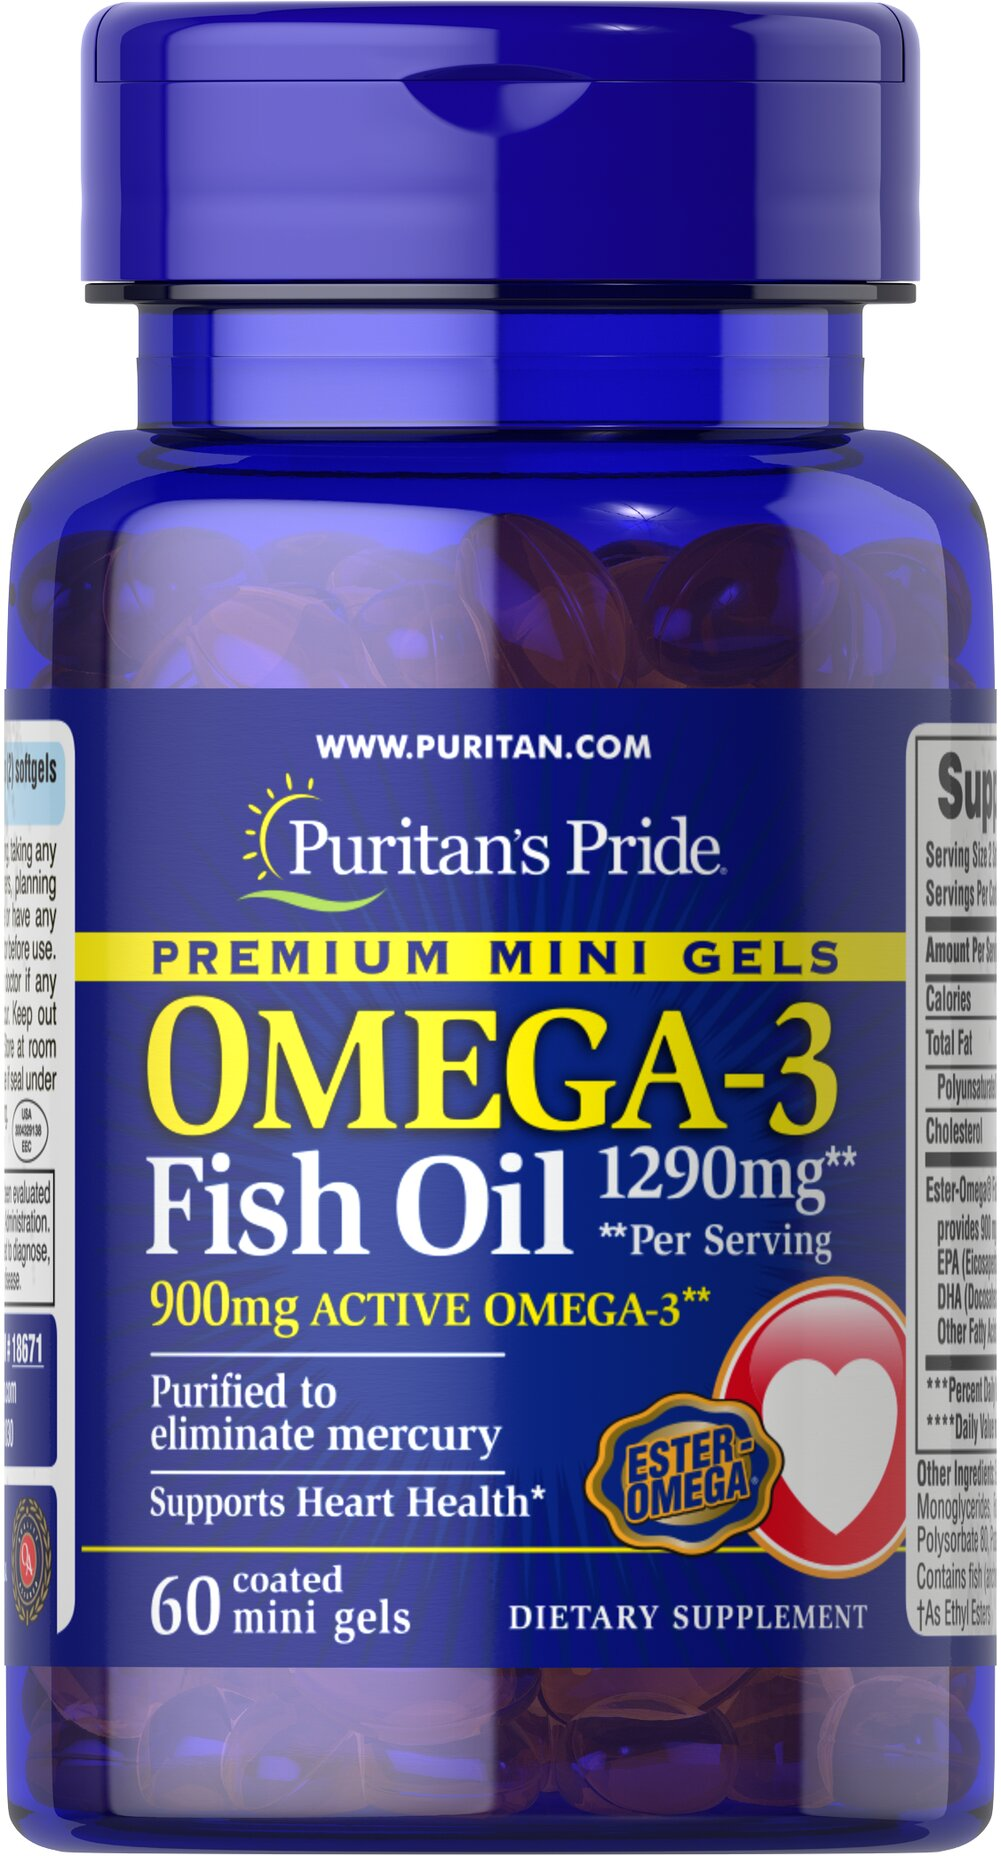 Omega-3 Fish Oil 645 mg Mini Gels (450 mg Active Omega-3) <p><strong>Purified to Eliminate Mercury</strong></p><p>Enhanced with 900 mg of active Omega-3 per serving</p><p>Mercury free mini gels are coated to prevent fishy aftertaste</p> 60 Coated Softgels 645 mg $23.99